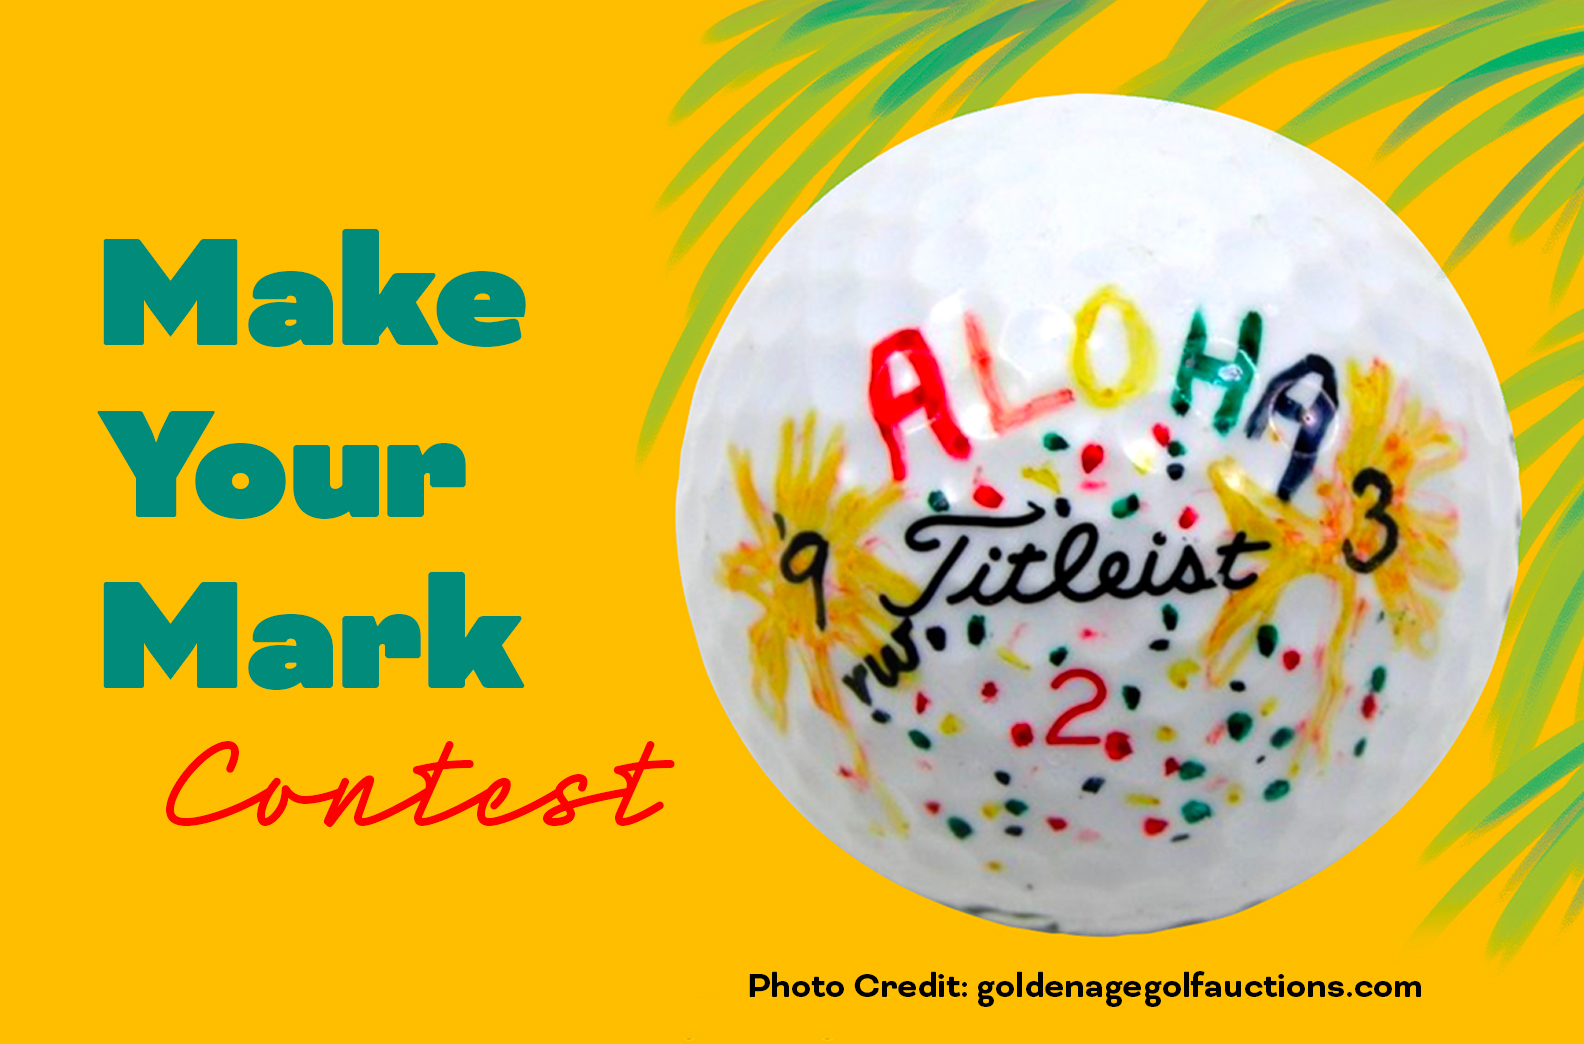 Make Your Mark Contest